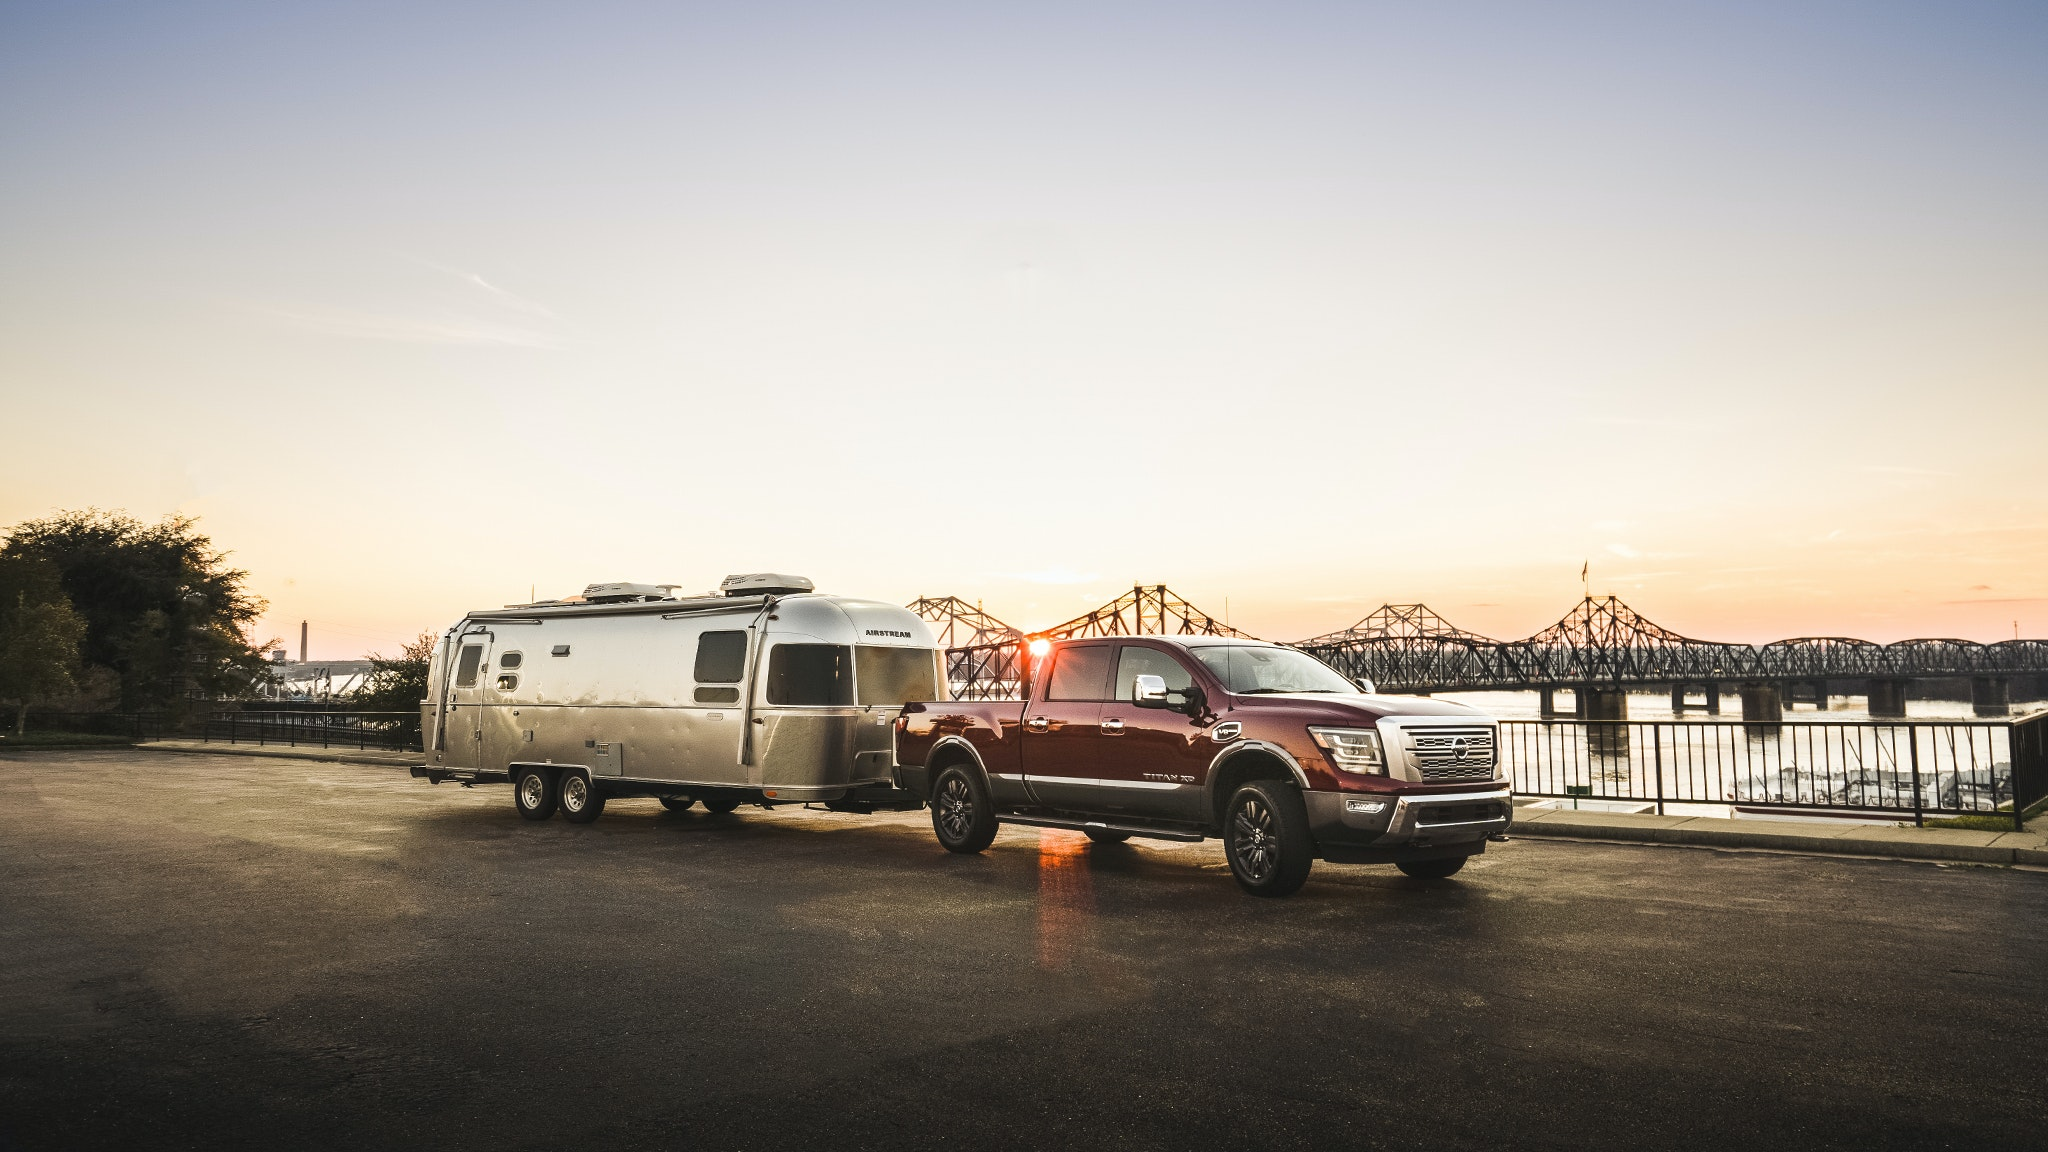 Airstream-Towing-a-Travel-Trailer-header-1